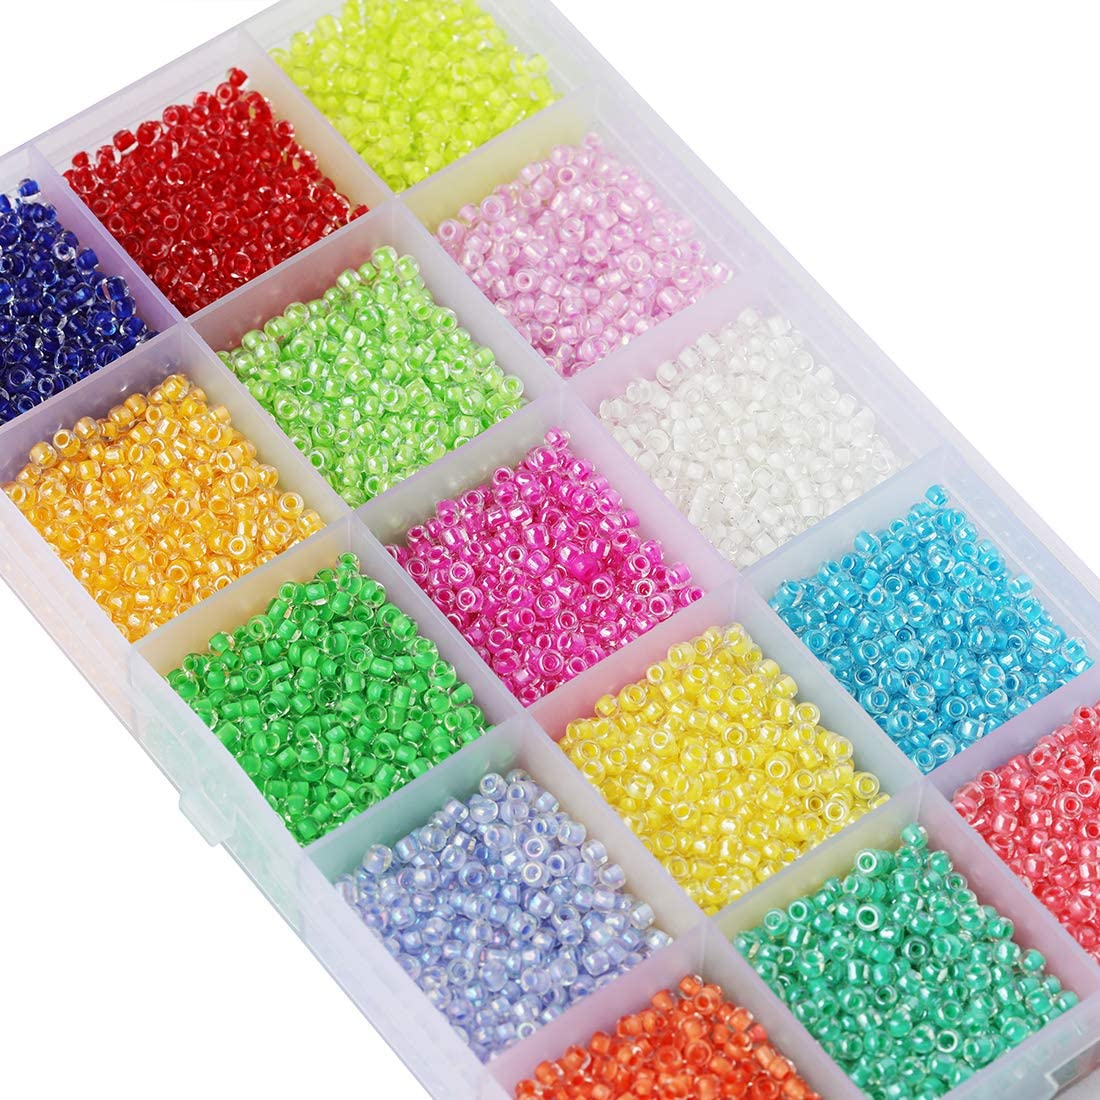 About 500pcs//Color, 15 Colors BALABEAD About 7500pcs in Box 8//0 Rainbow Colors Lined Glass Seed Beads 3mm Lustered Loose Spacer Beads